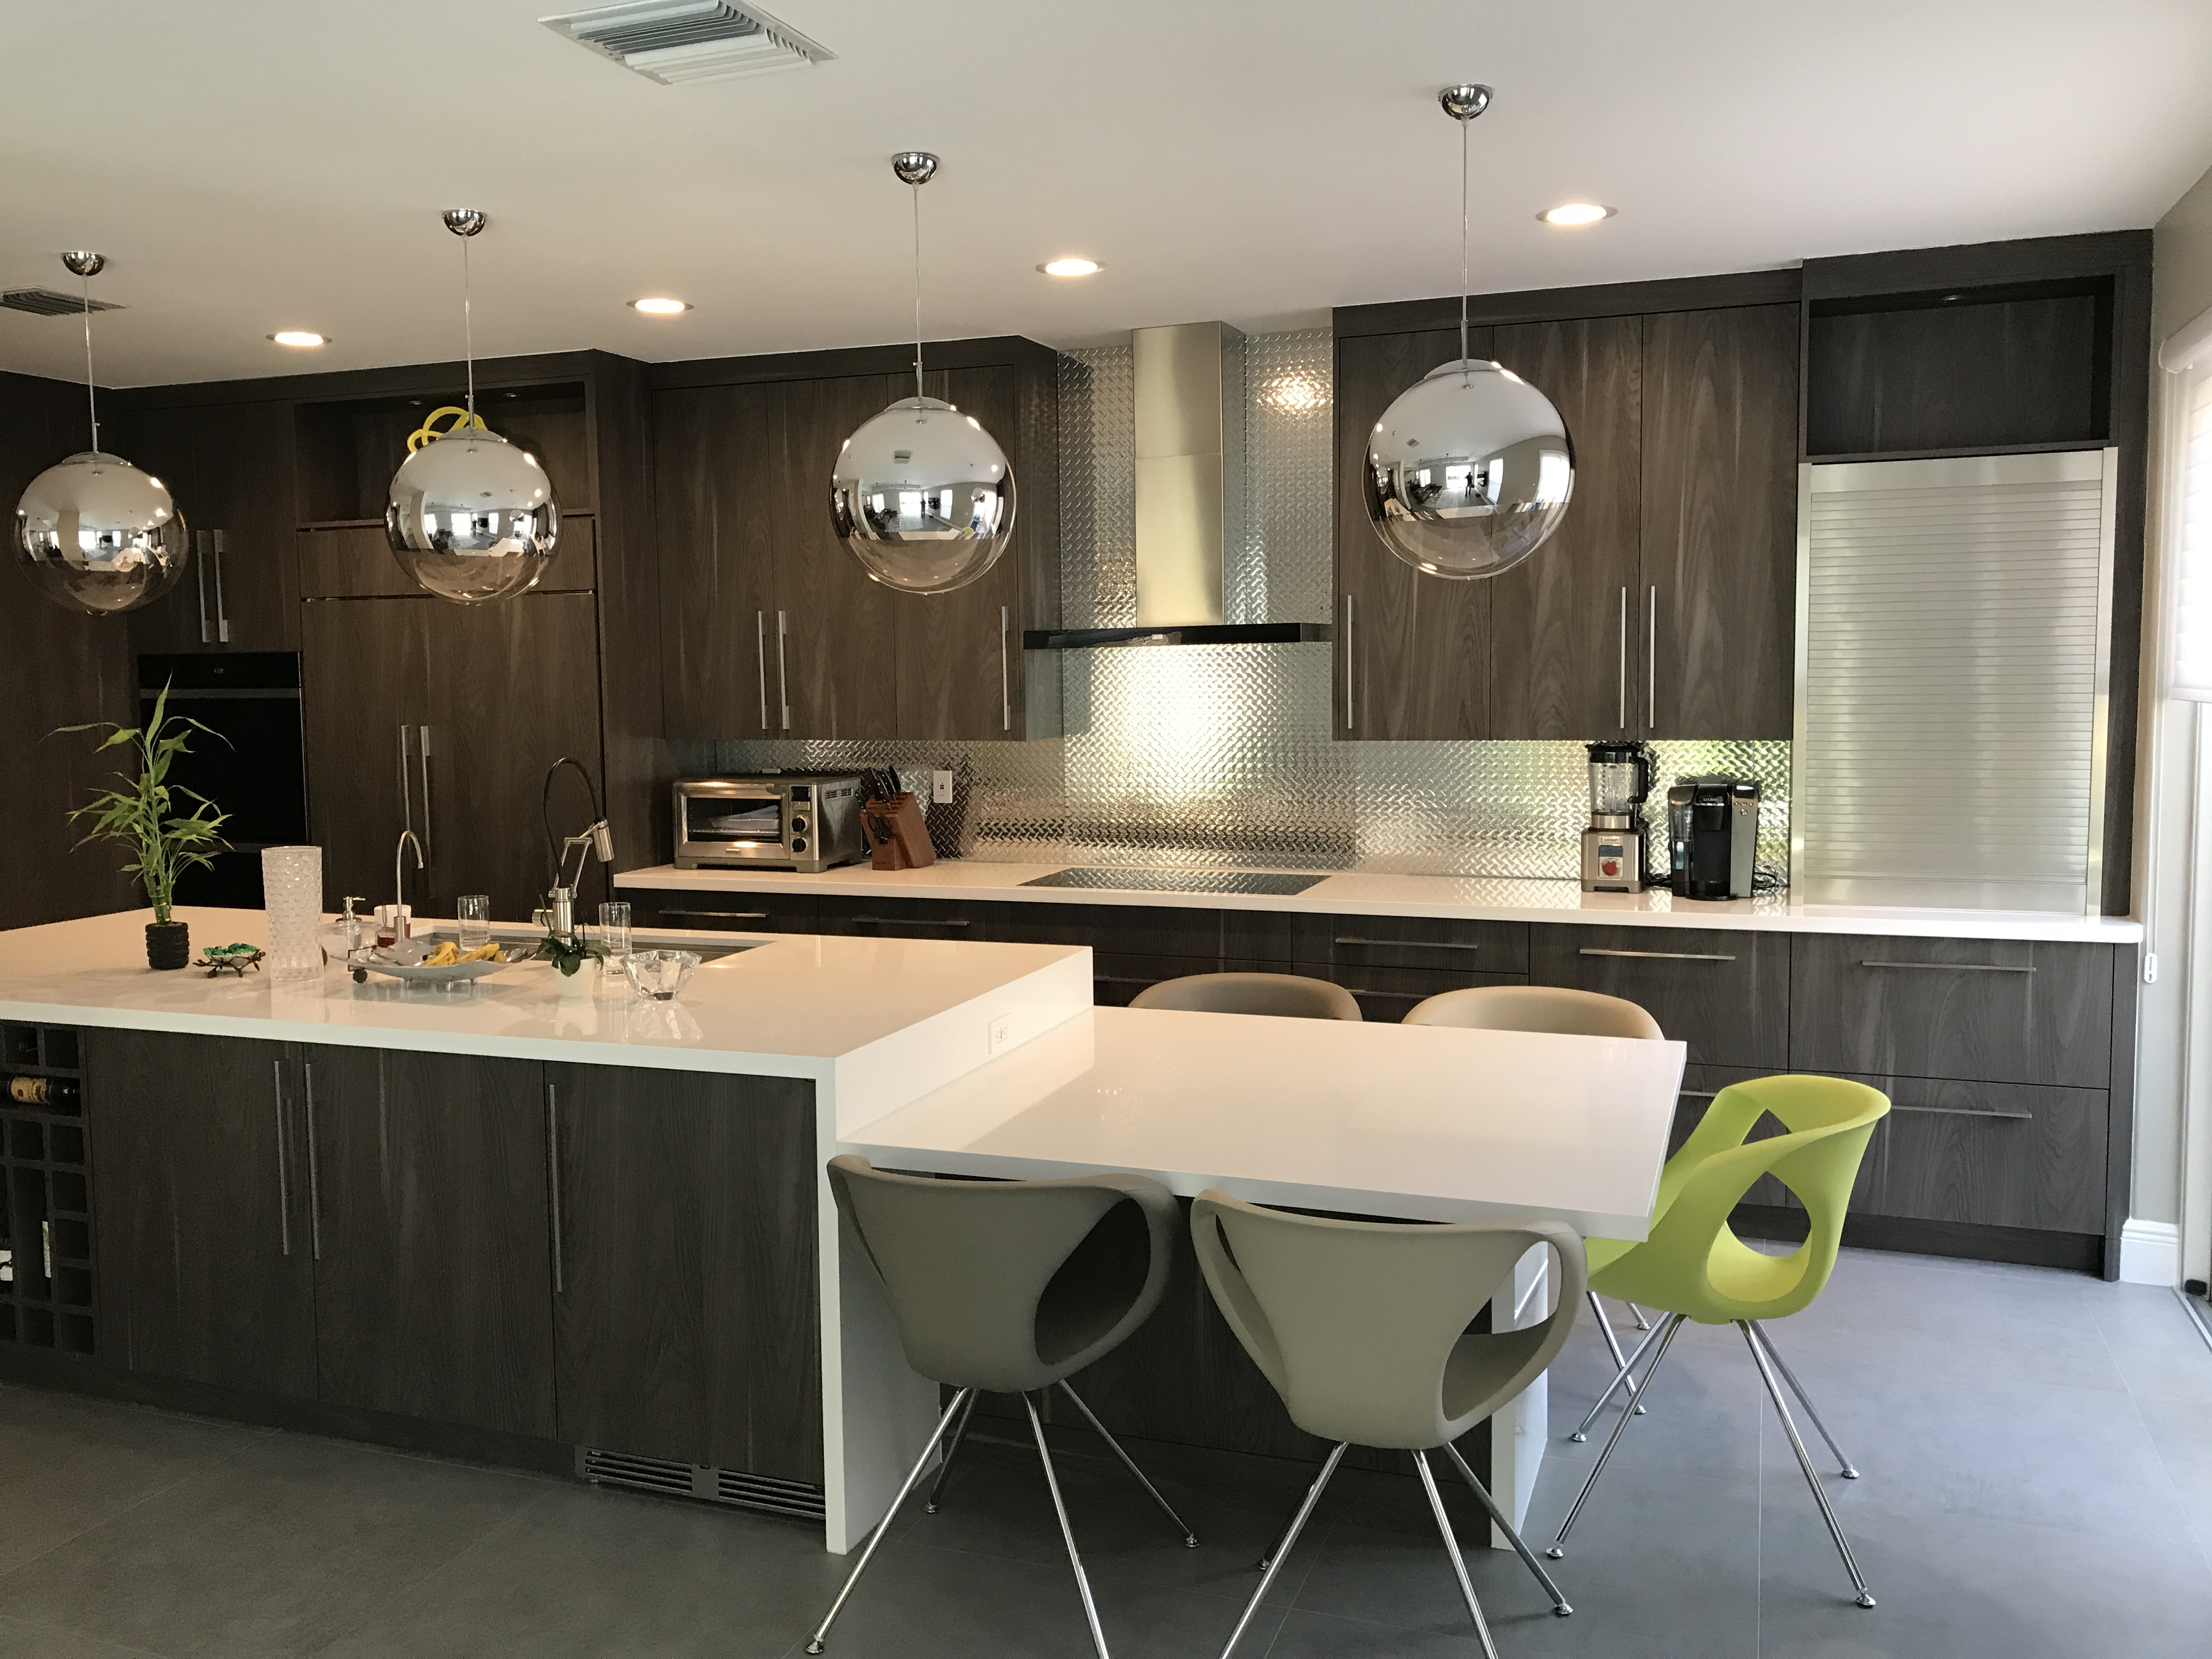 Prime Design Custom Cabinetry Millwork ~ Custom kitchen cabinets design services in miami dng